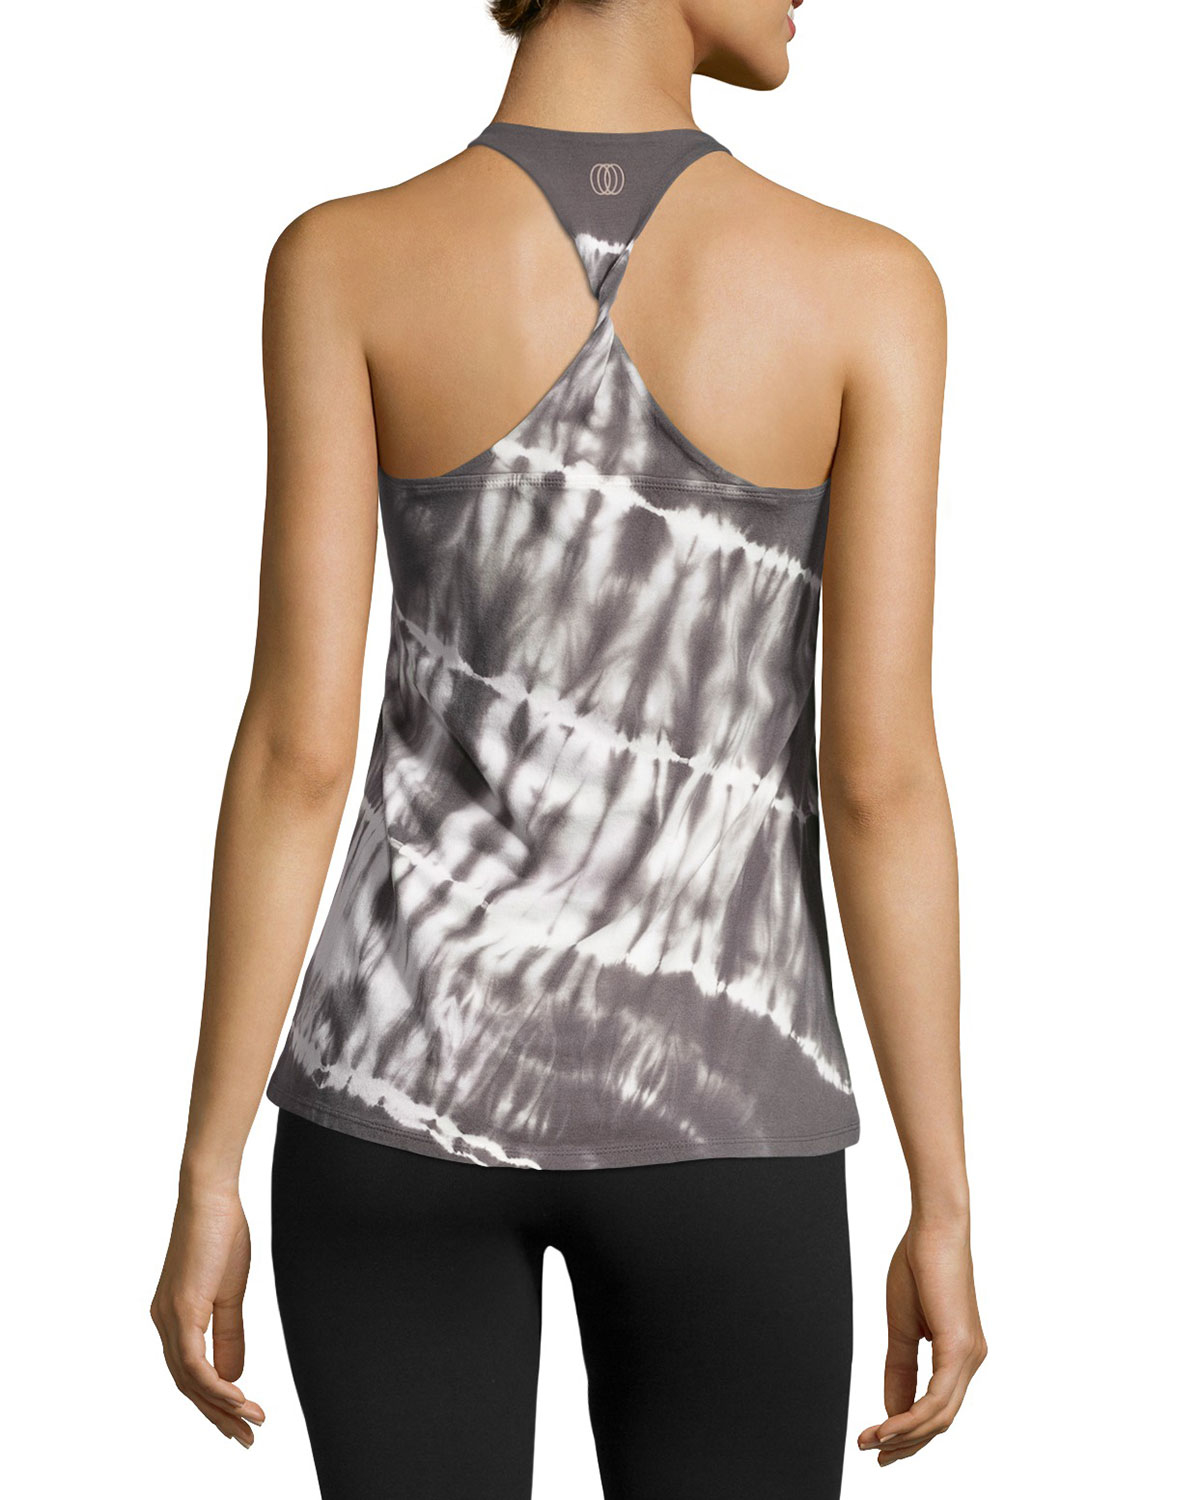 476aadc85282c Balance Collection Tie-dye Racerback Tank in Gray - Lyst